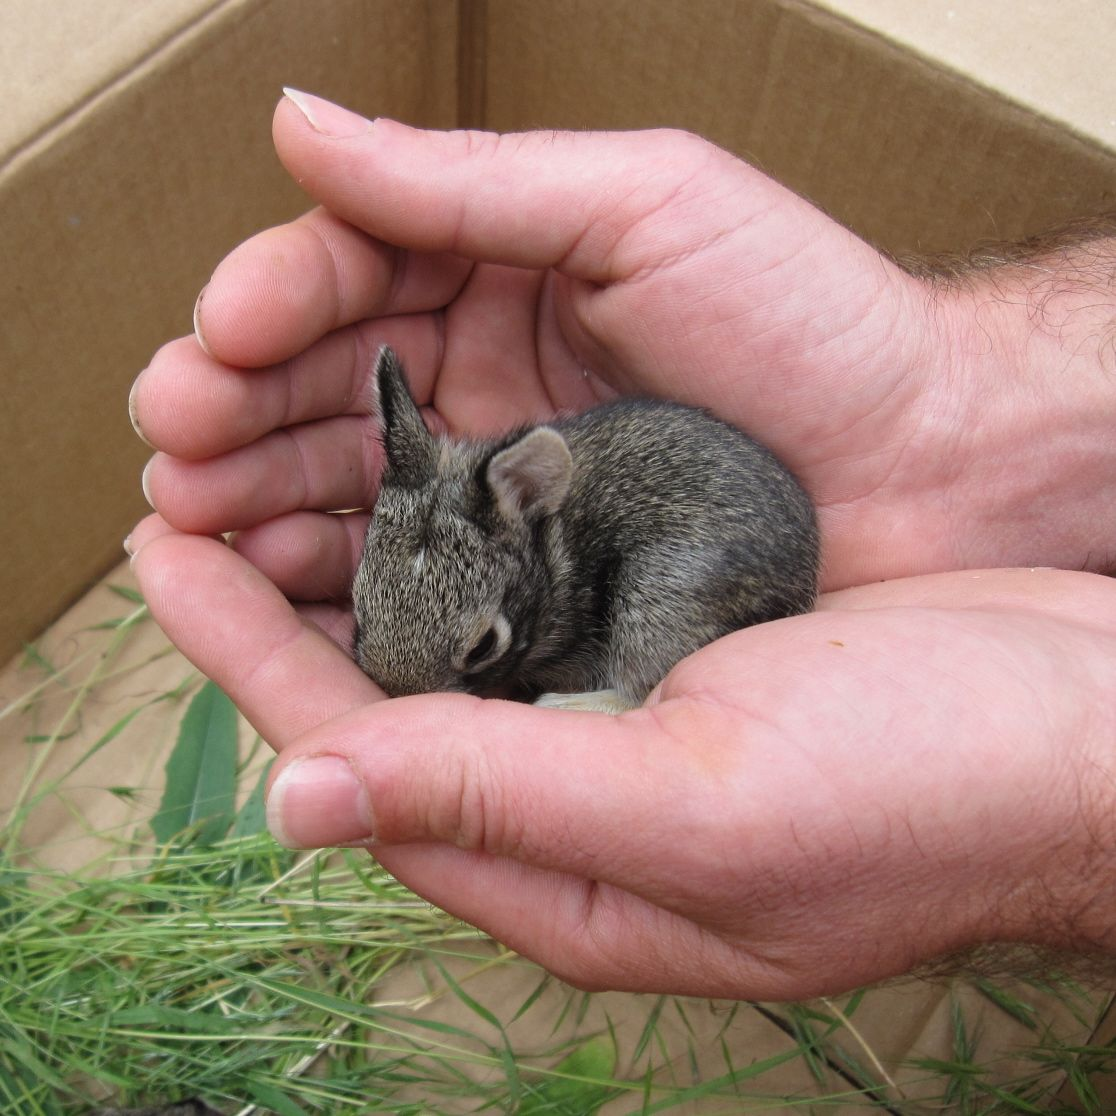 Cute animals for sale - Animal Really Cute Baby Bunnies For Sale